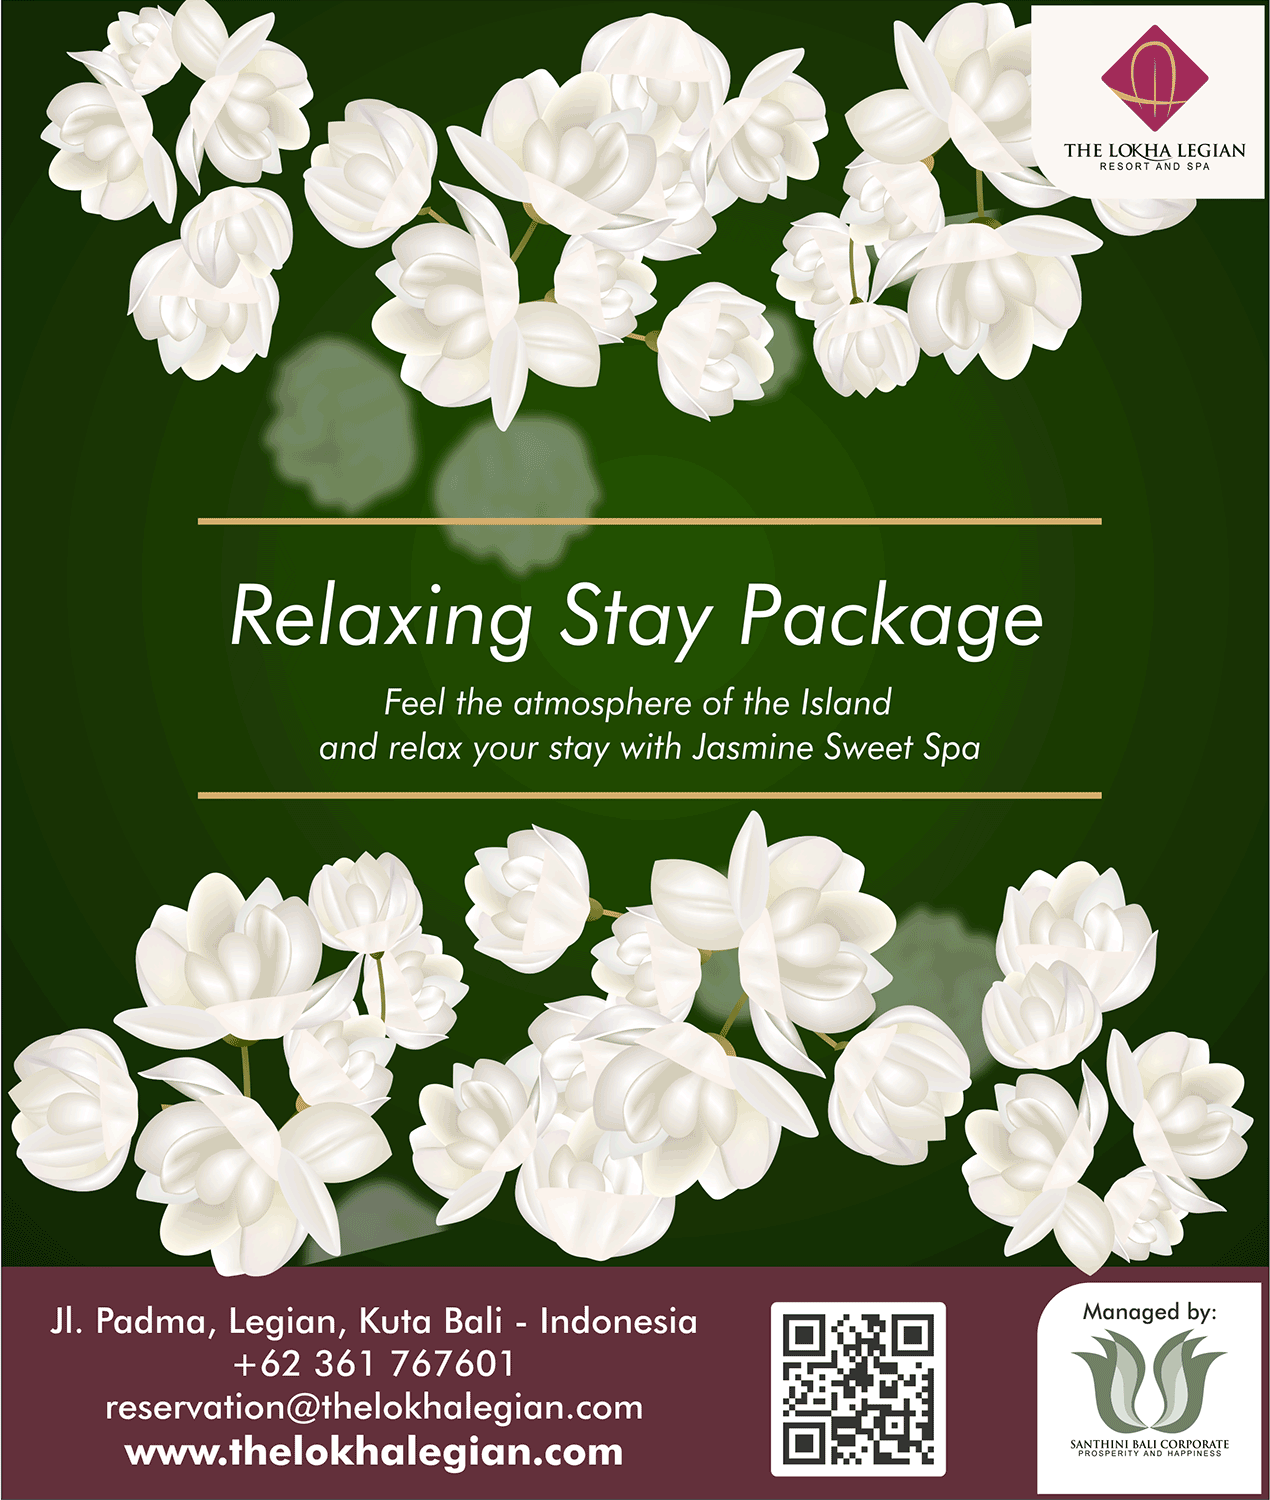 Relaxing Stay Package